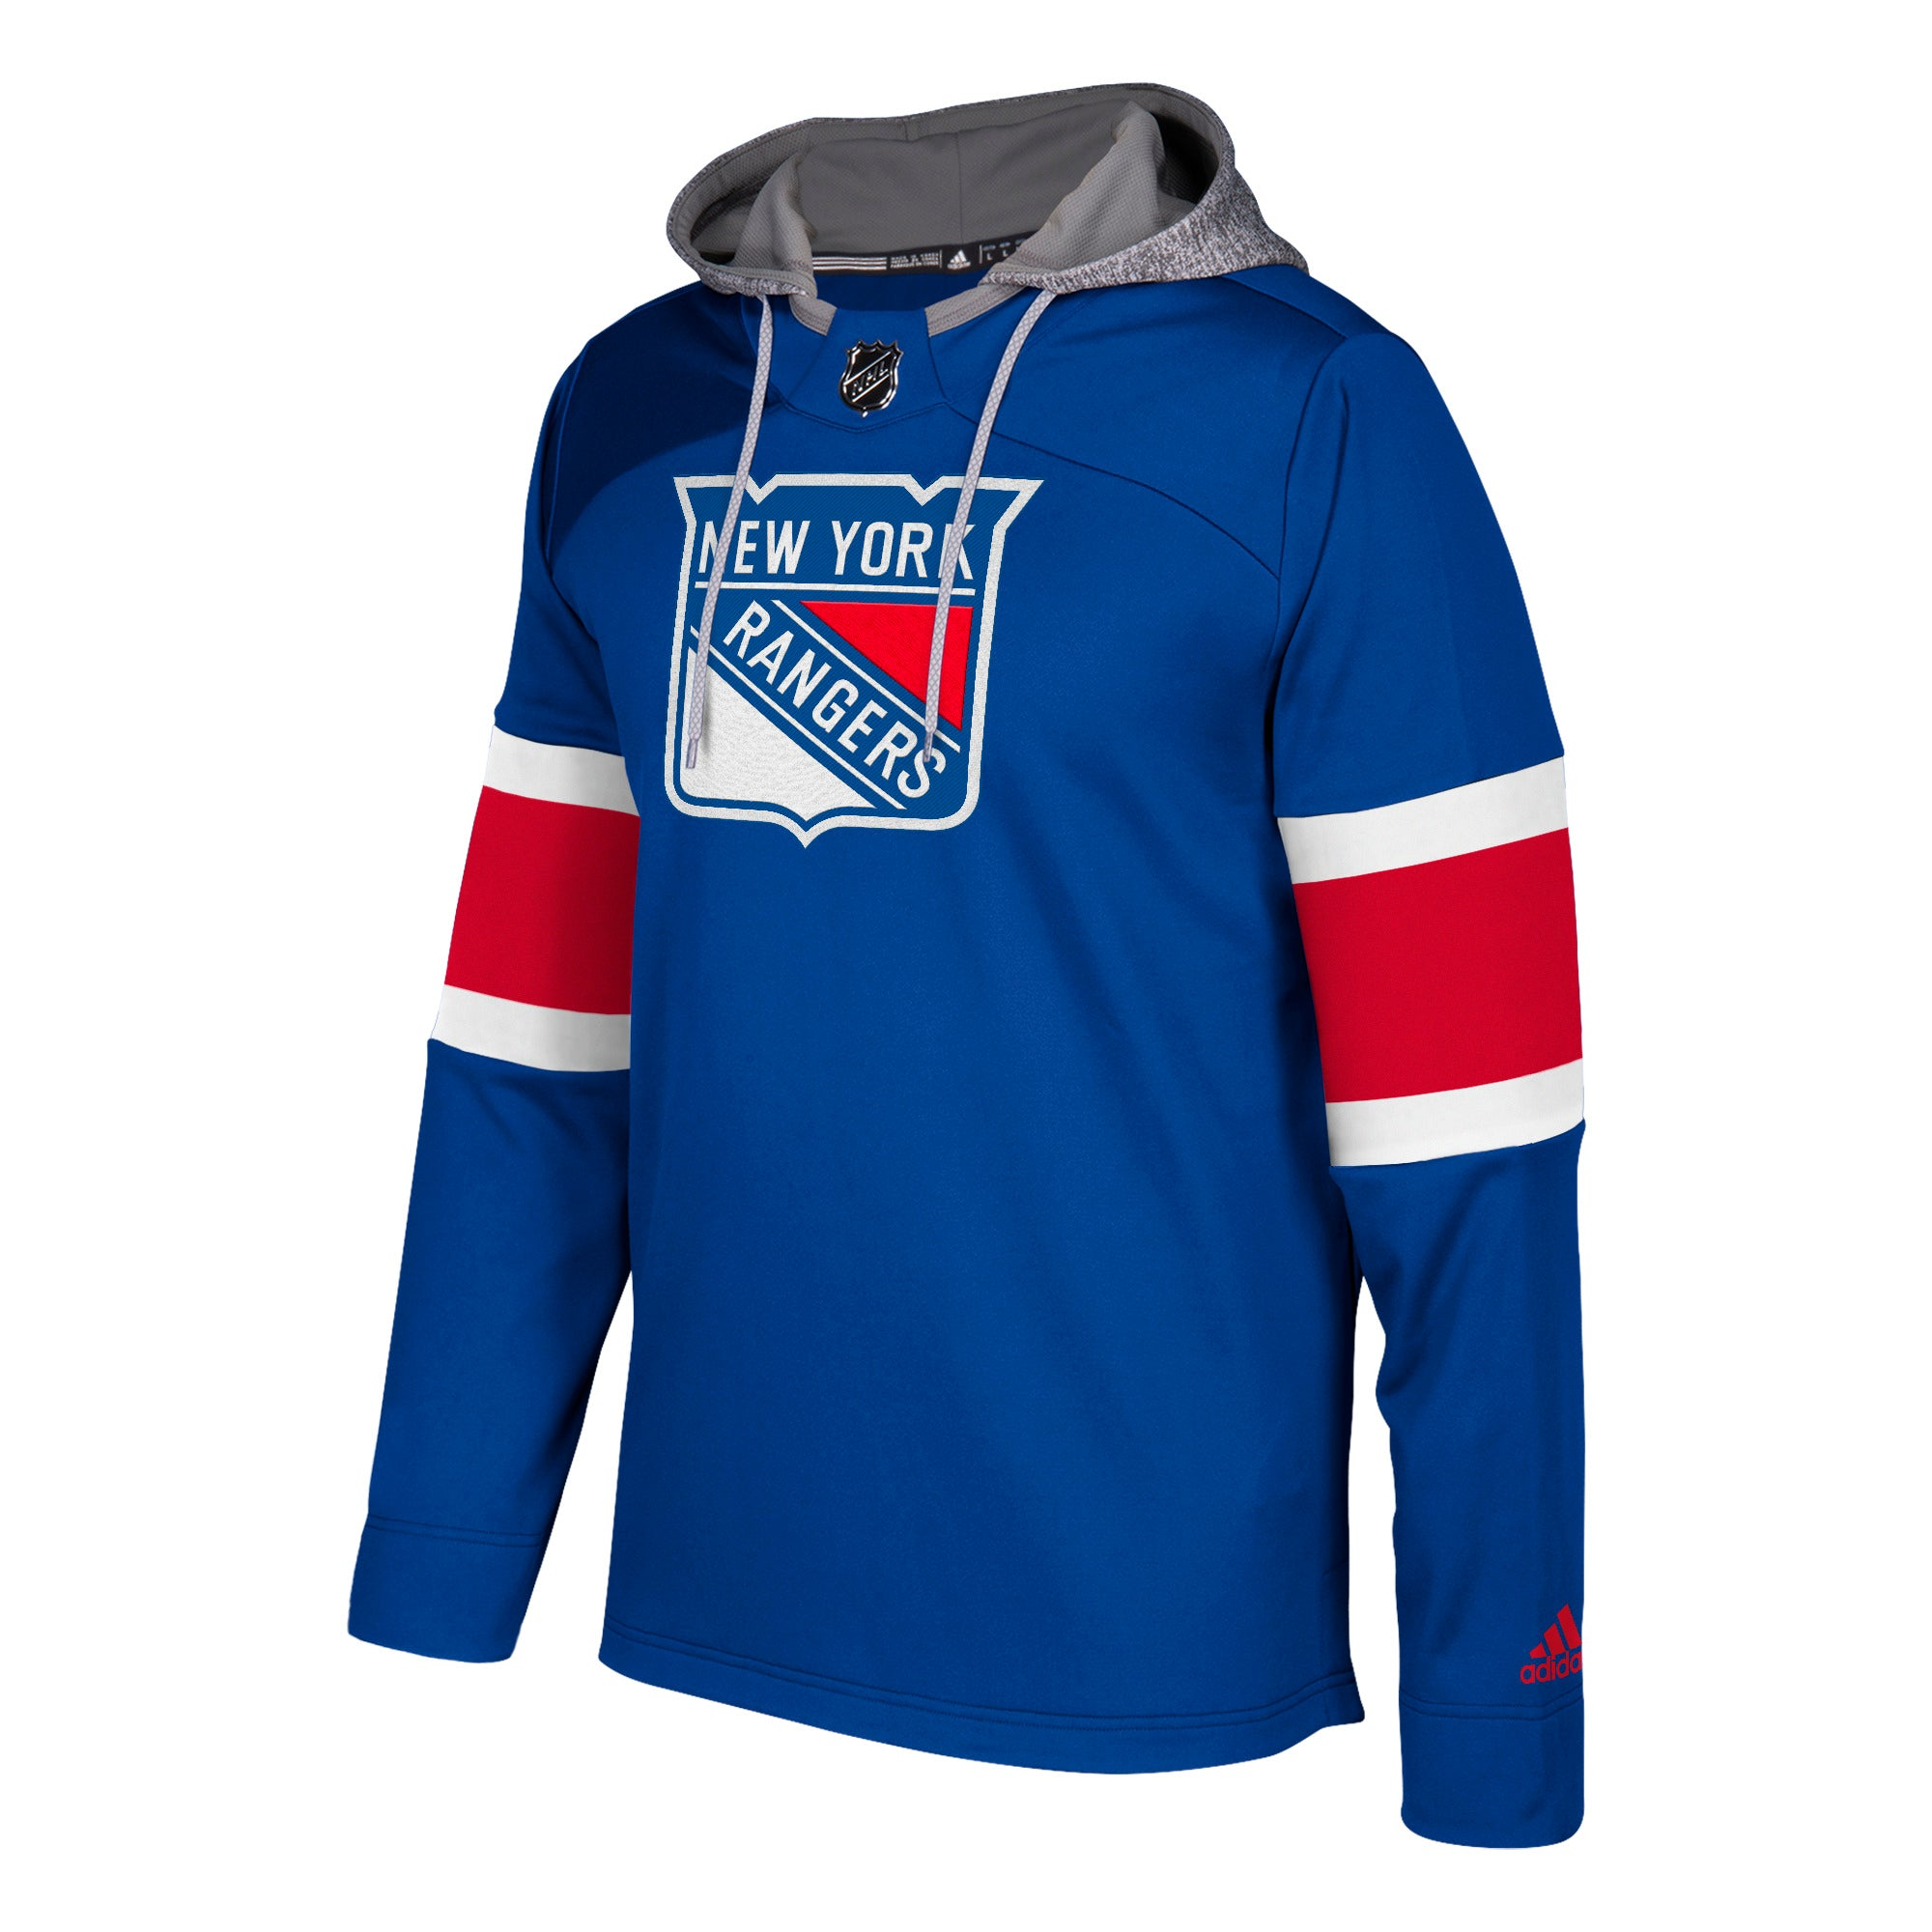 offer discounts best shoes new images of 678F New York Rangers Blue Adidas Platinum Jersey Hood Hoodie